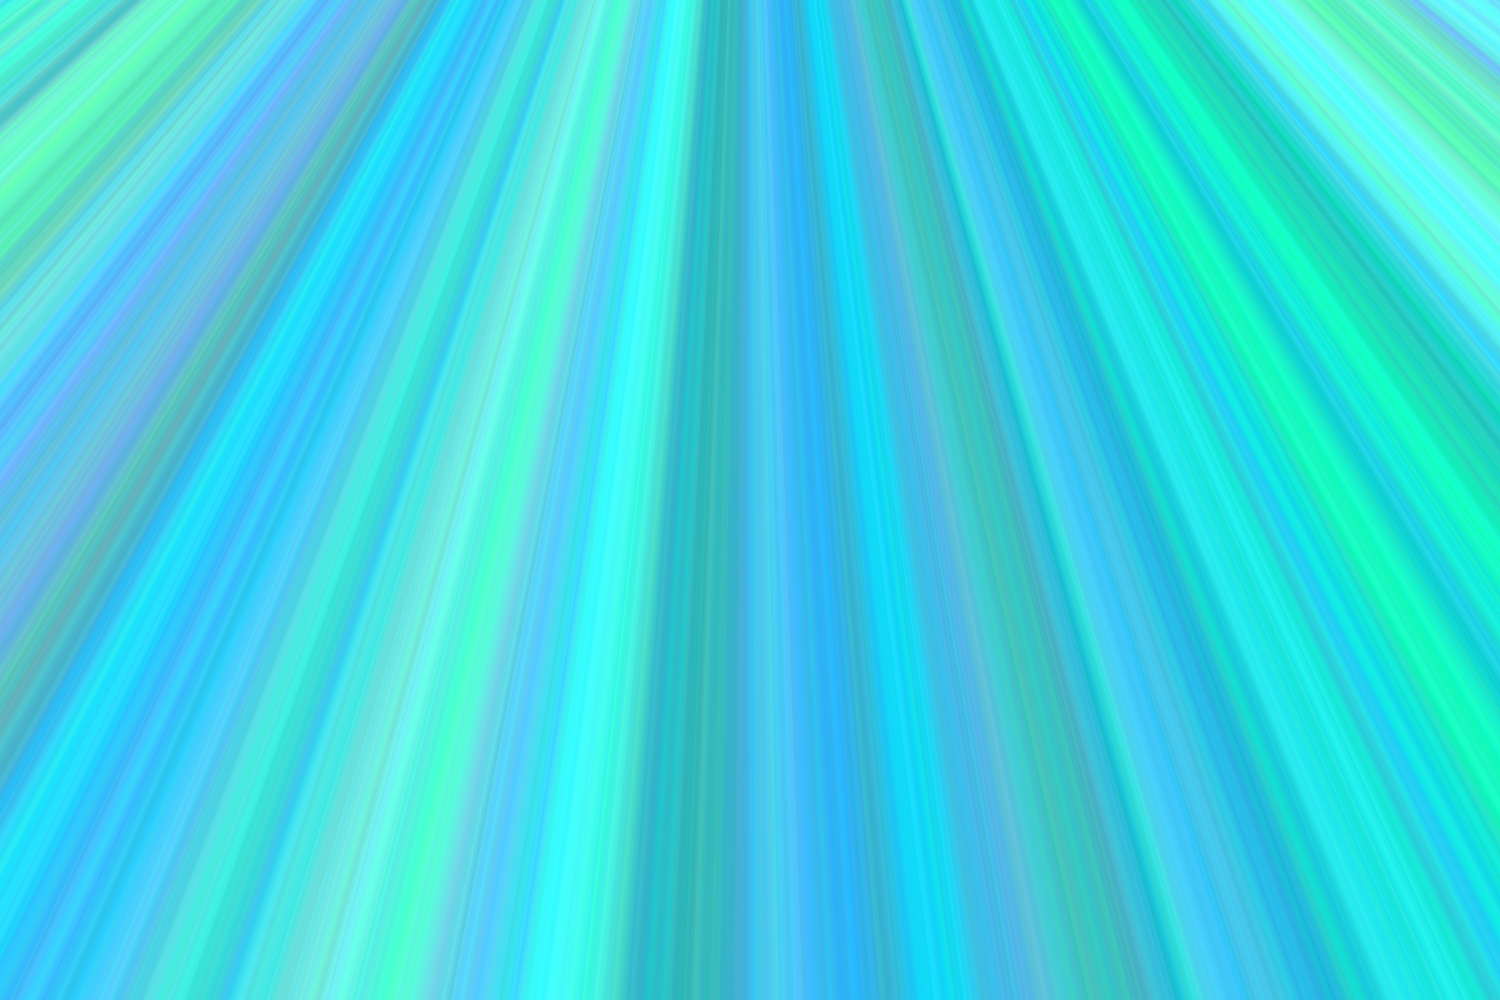 10 Color Backgrounds (AI, EPS, JPG 5000x5000) example image 6